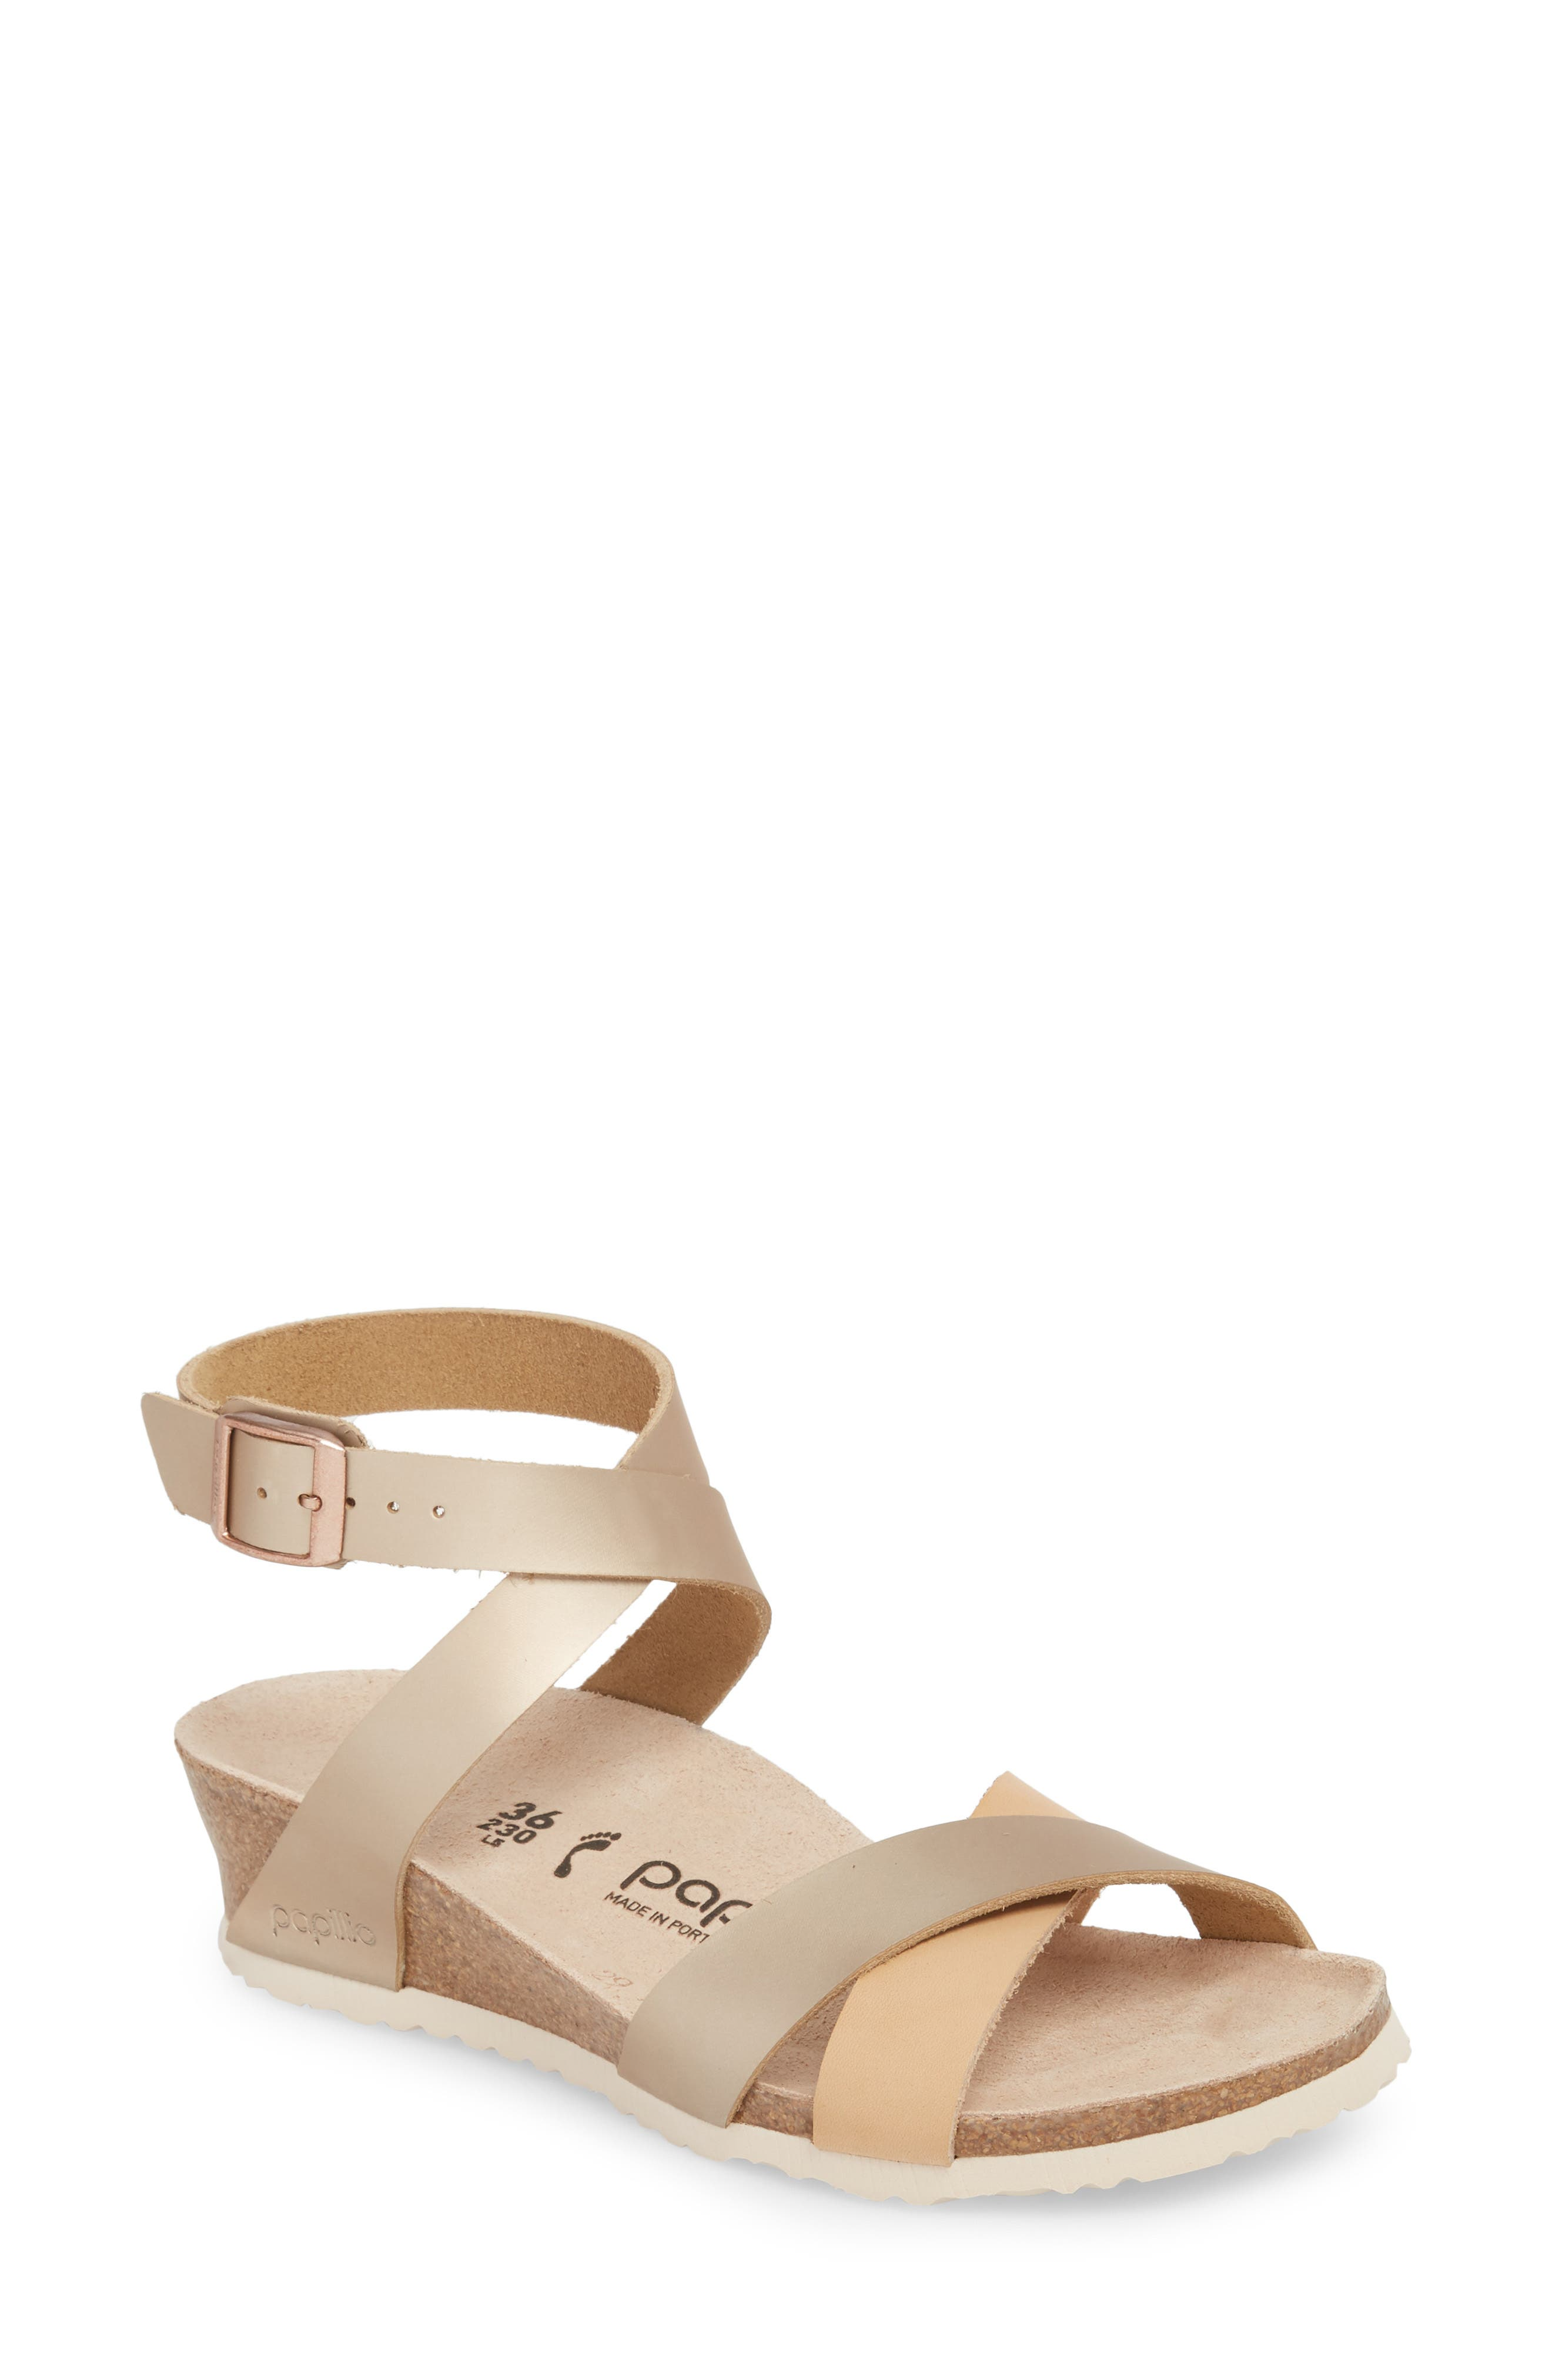 Papillio by Birkenstock Lola Wedge Sandal,                         Main,                         color, Frosted Metallic Rose